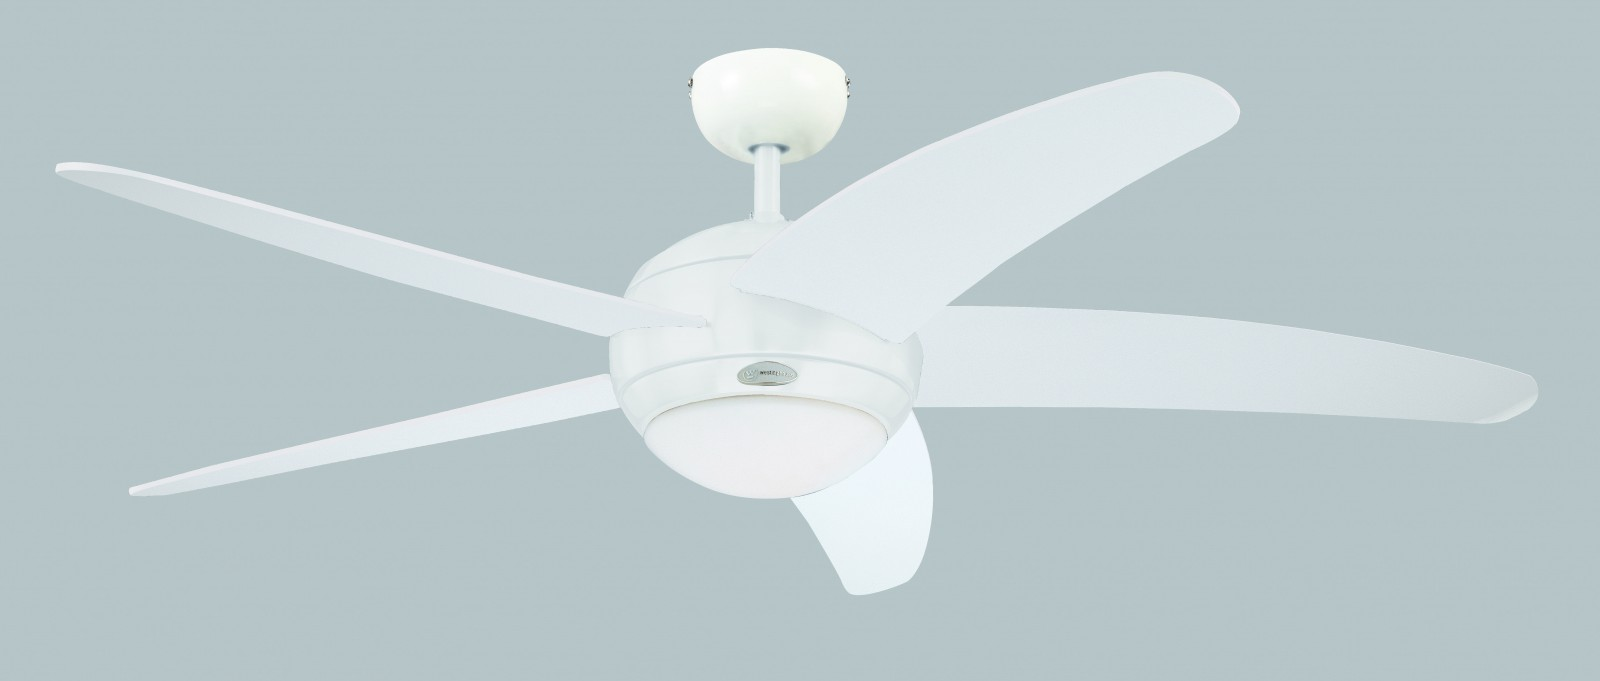 Westinghouse Ceiling Fan Bendan White With Remote Control Bild 2